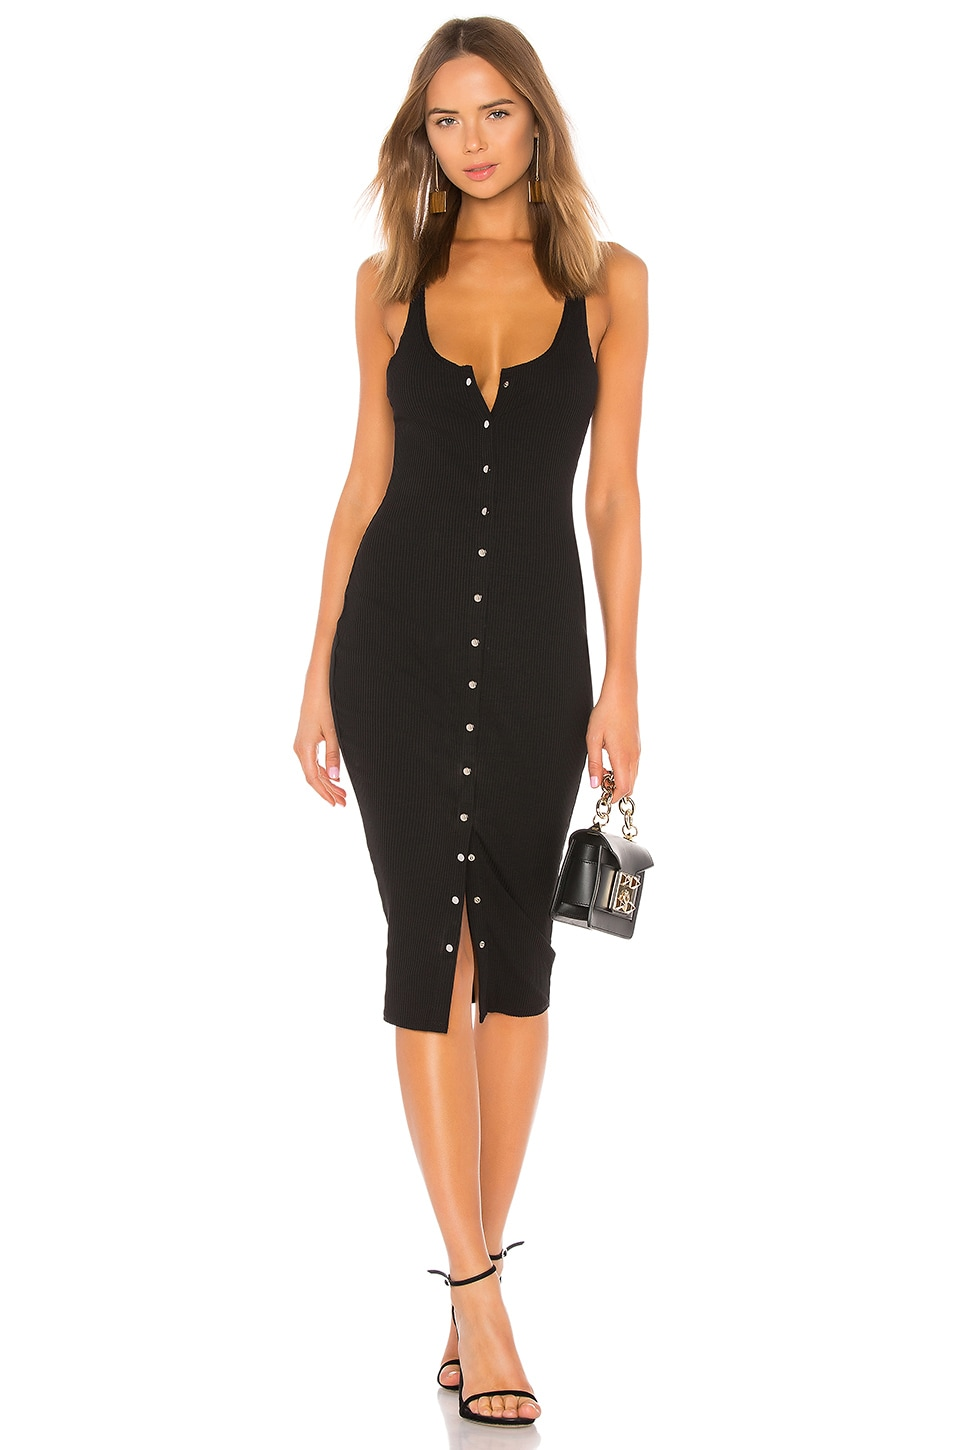 Shelby Midi Dress                   superdown                                                                                                                             CA$ 83.70 9